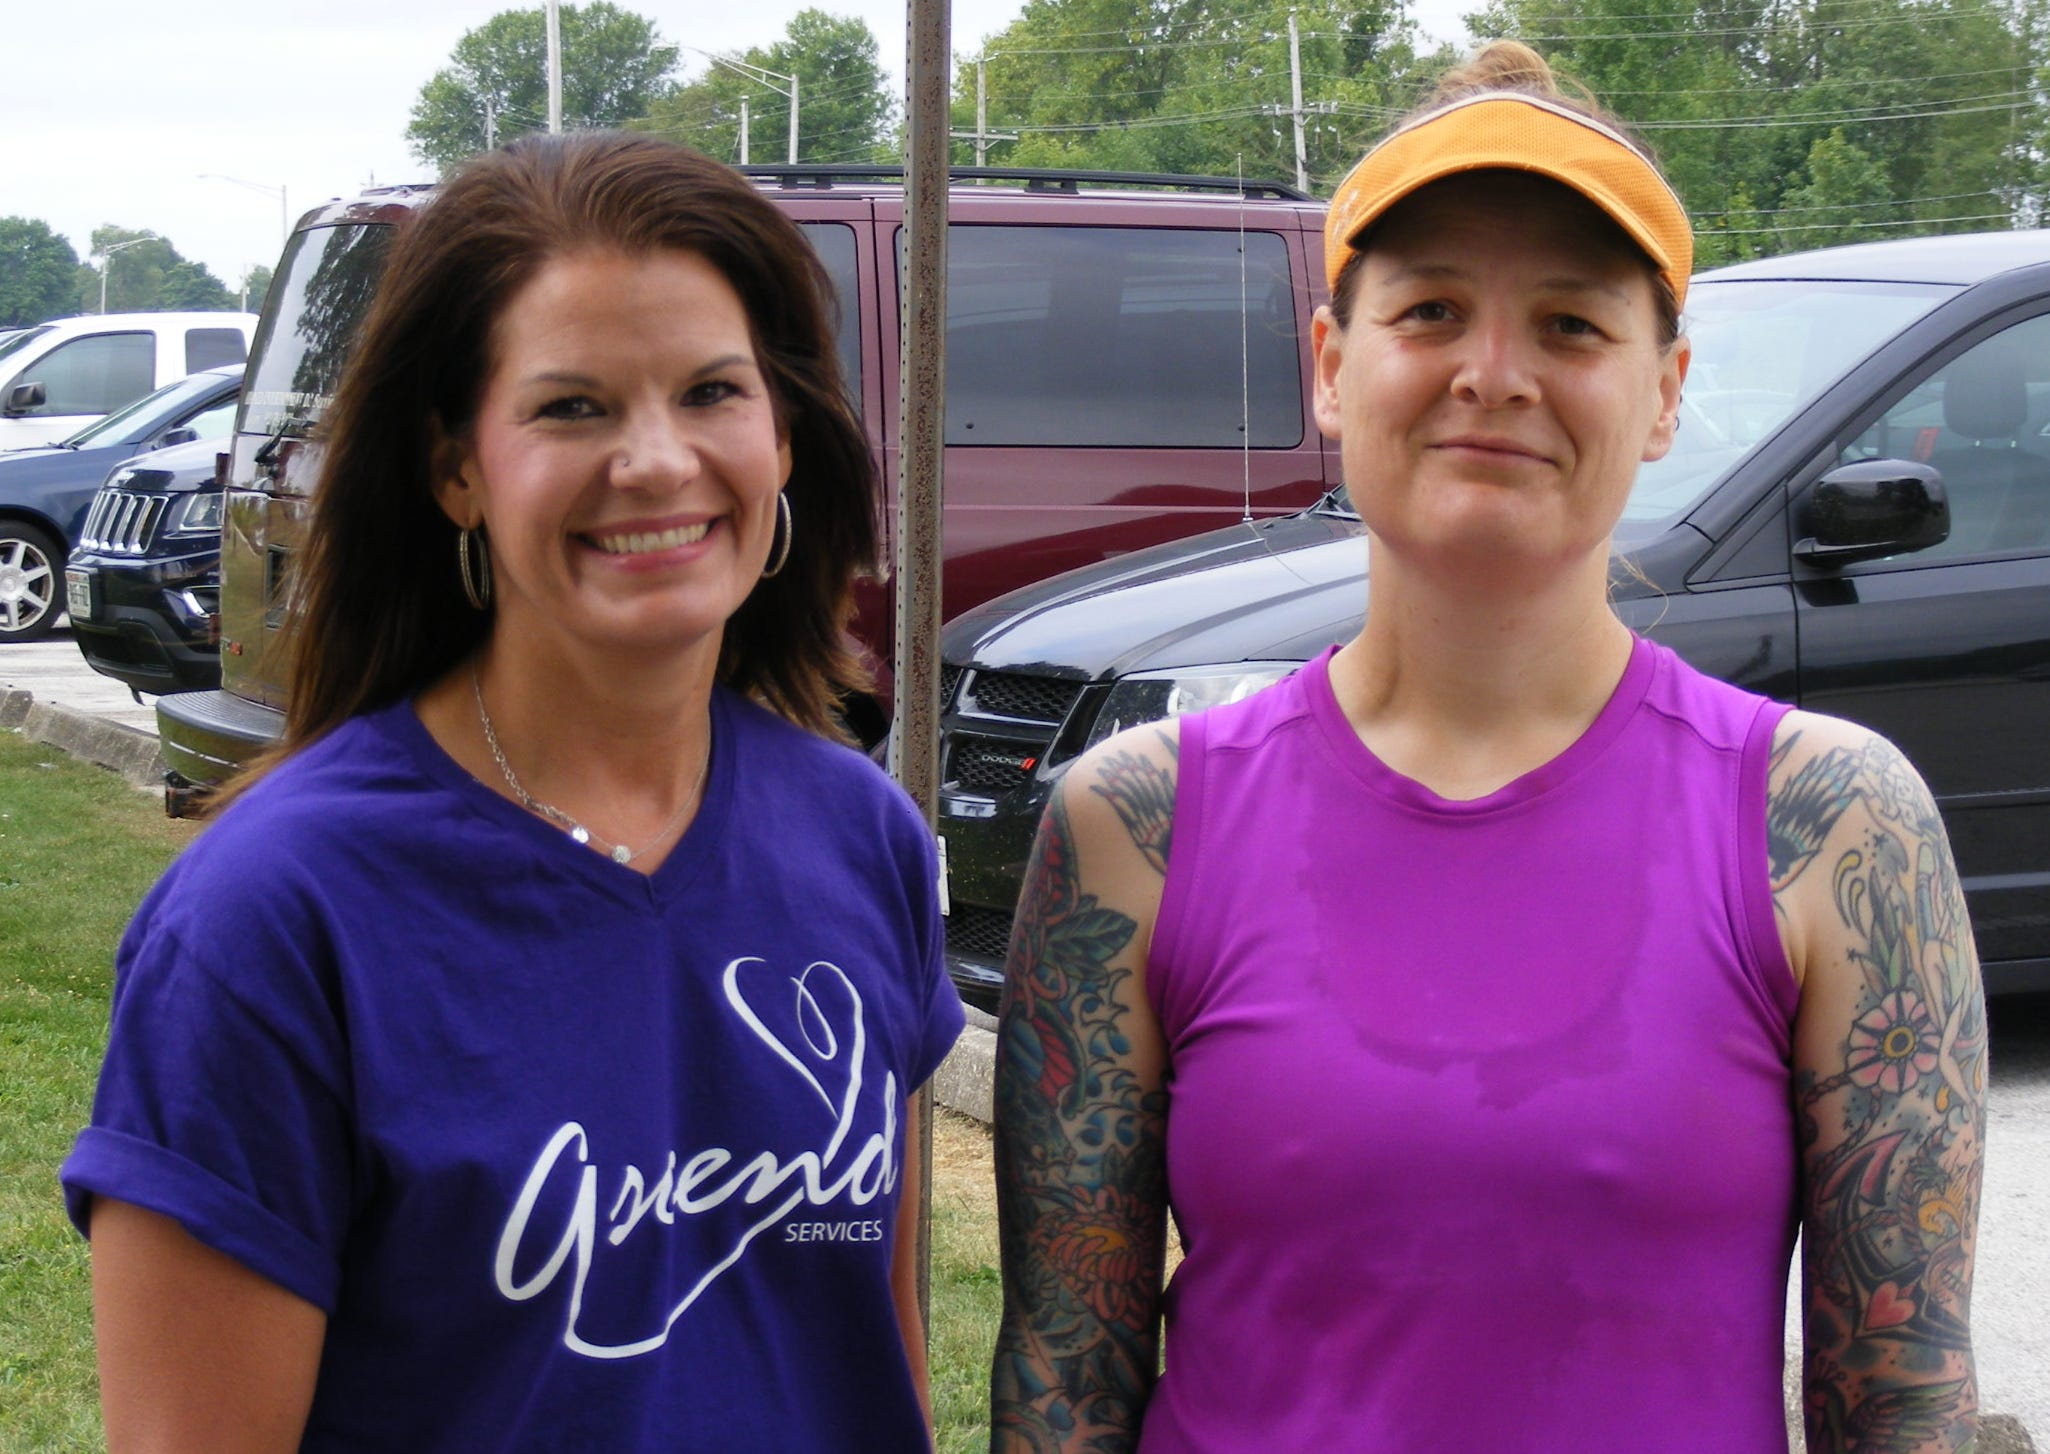 Ascend Services, Inc., hosted its 5K Run, Walk & Roll Aug. 18 on Mariners Trail. Pictured are top female winner Julie Freund (right) and Ascend Director Deanna Genske.